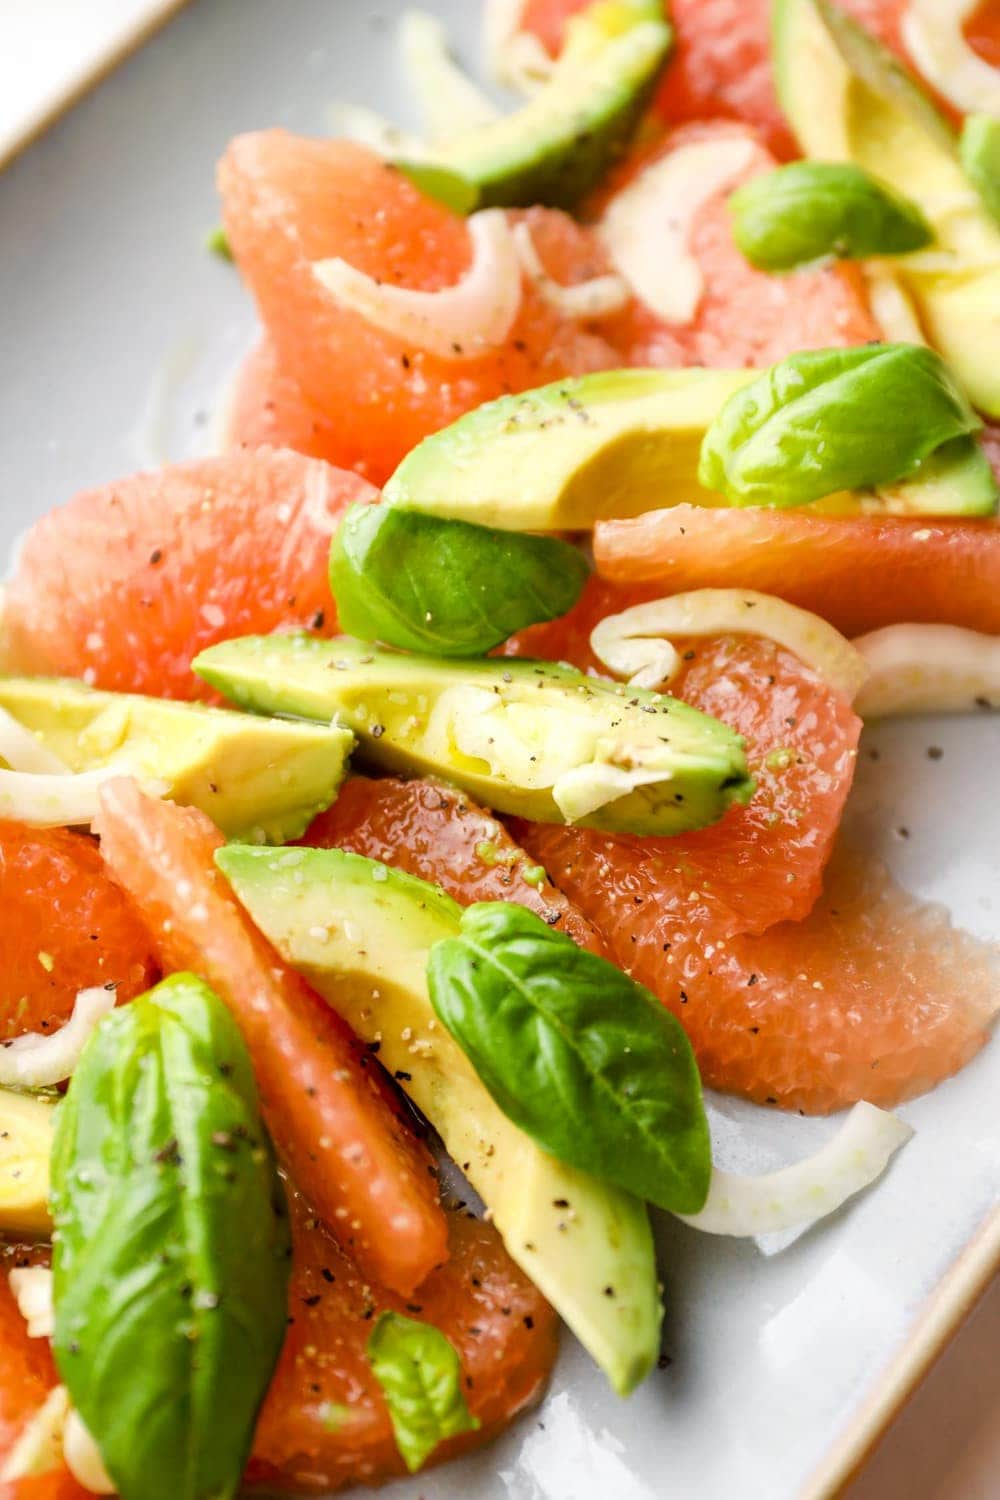 Grapefruit Avocado Salad with fennel and basil on a serving plate.